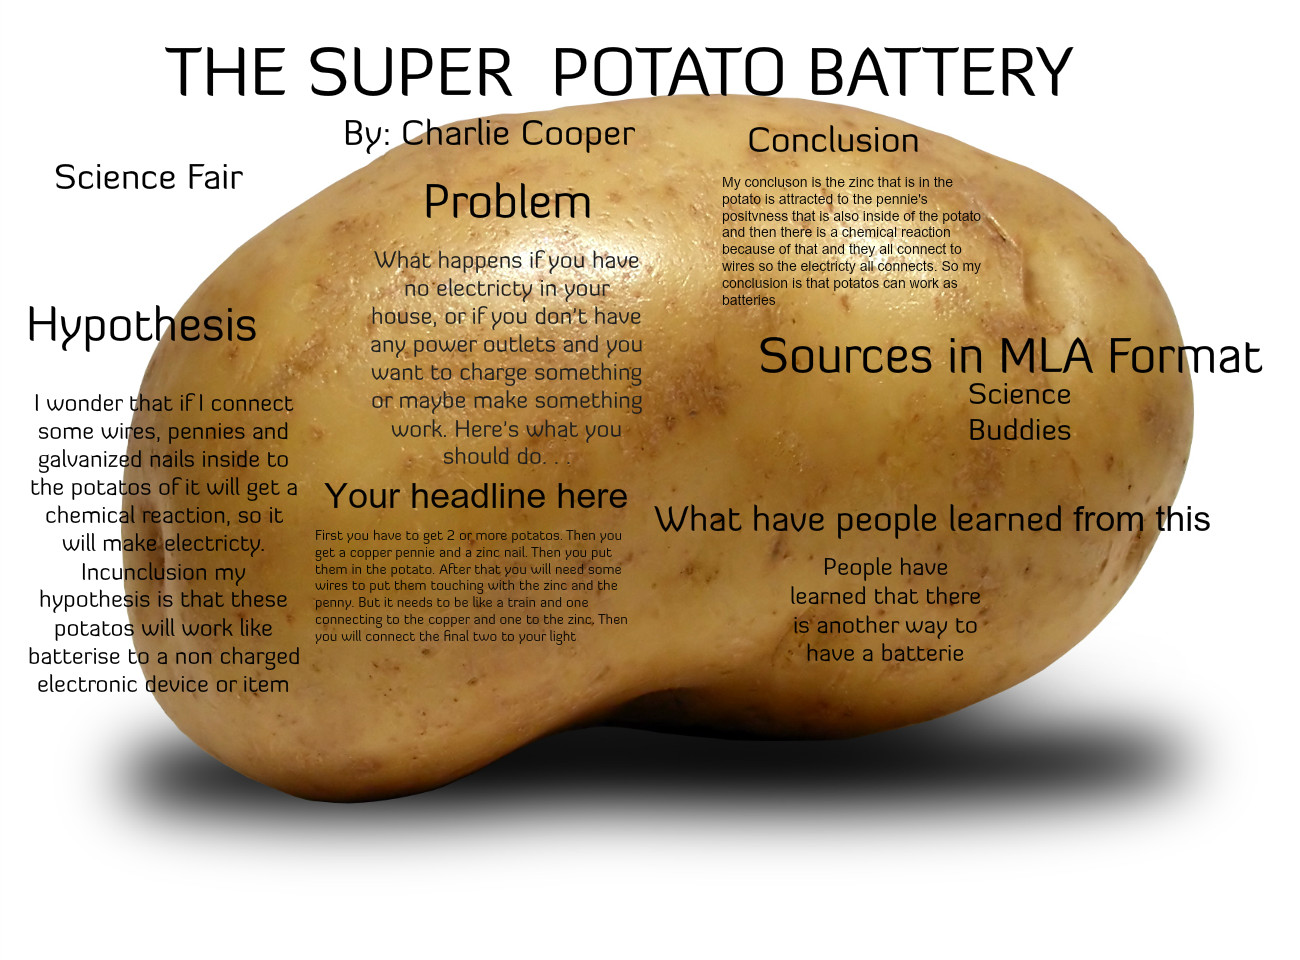 hypothesis in potato Potato battery experiment hypothesis the hypothesis for this experiment is that the juices in potatoes contain chemicals which can facilitate electricity generating chemical reactions with the help of electrodes.